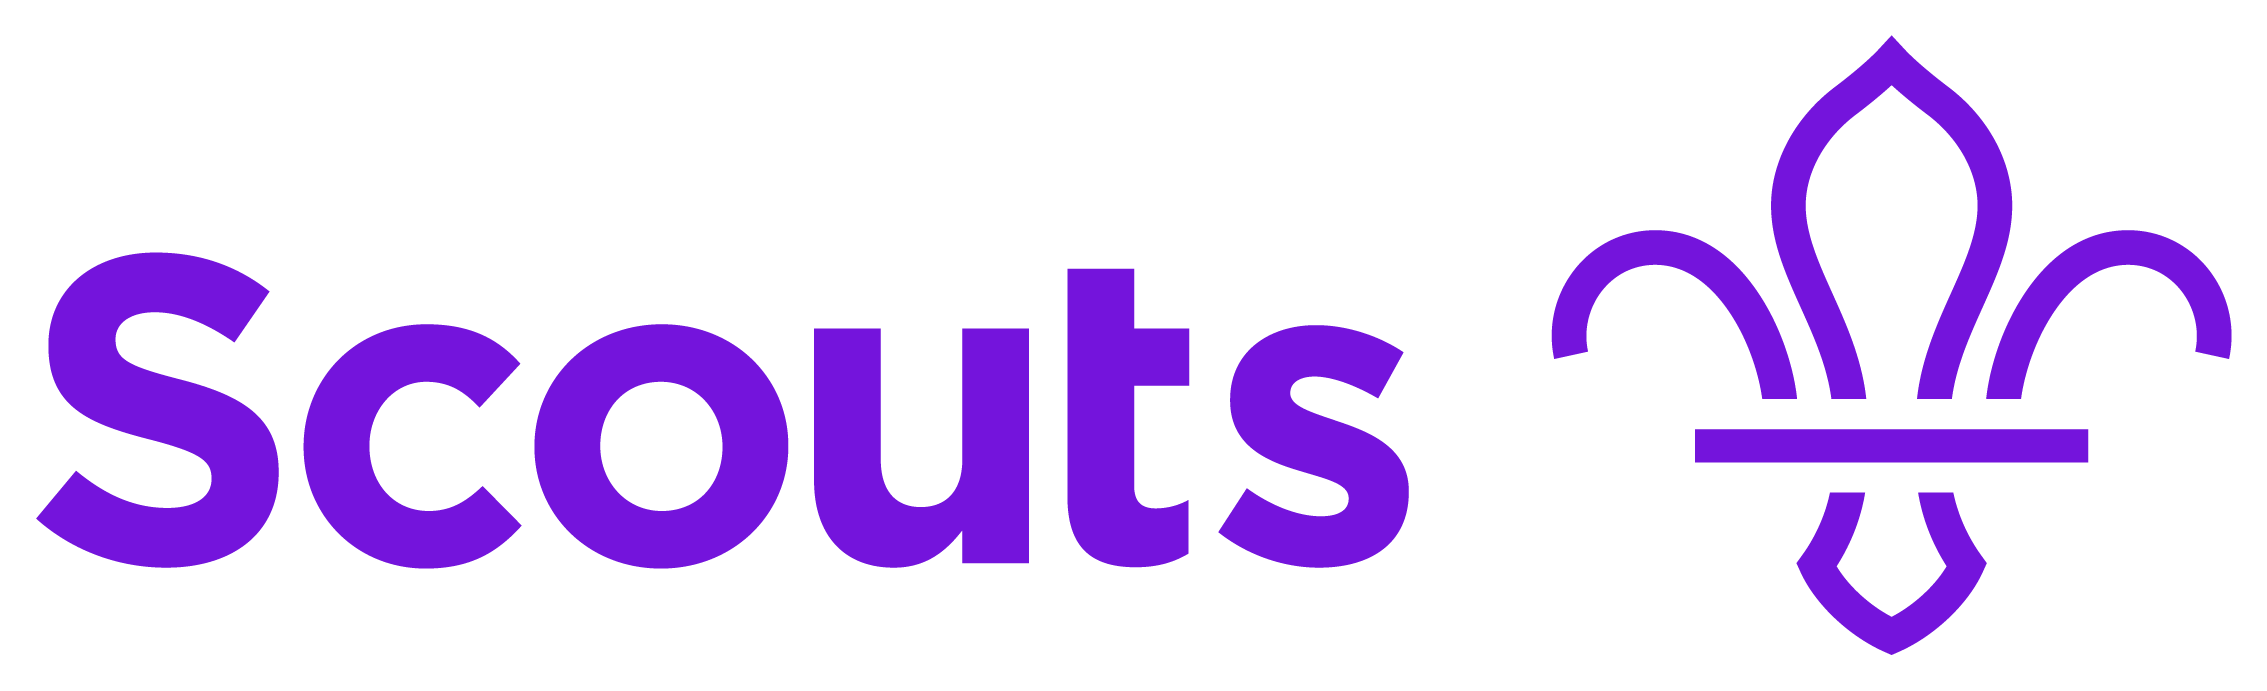 Scouts_Logo_Horizontal_Purple.png